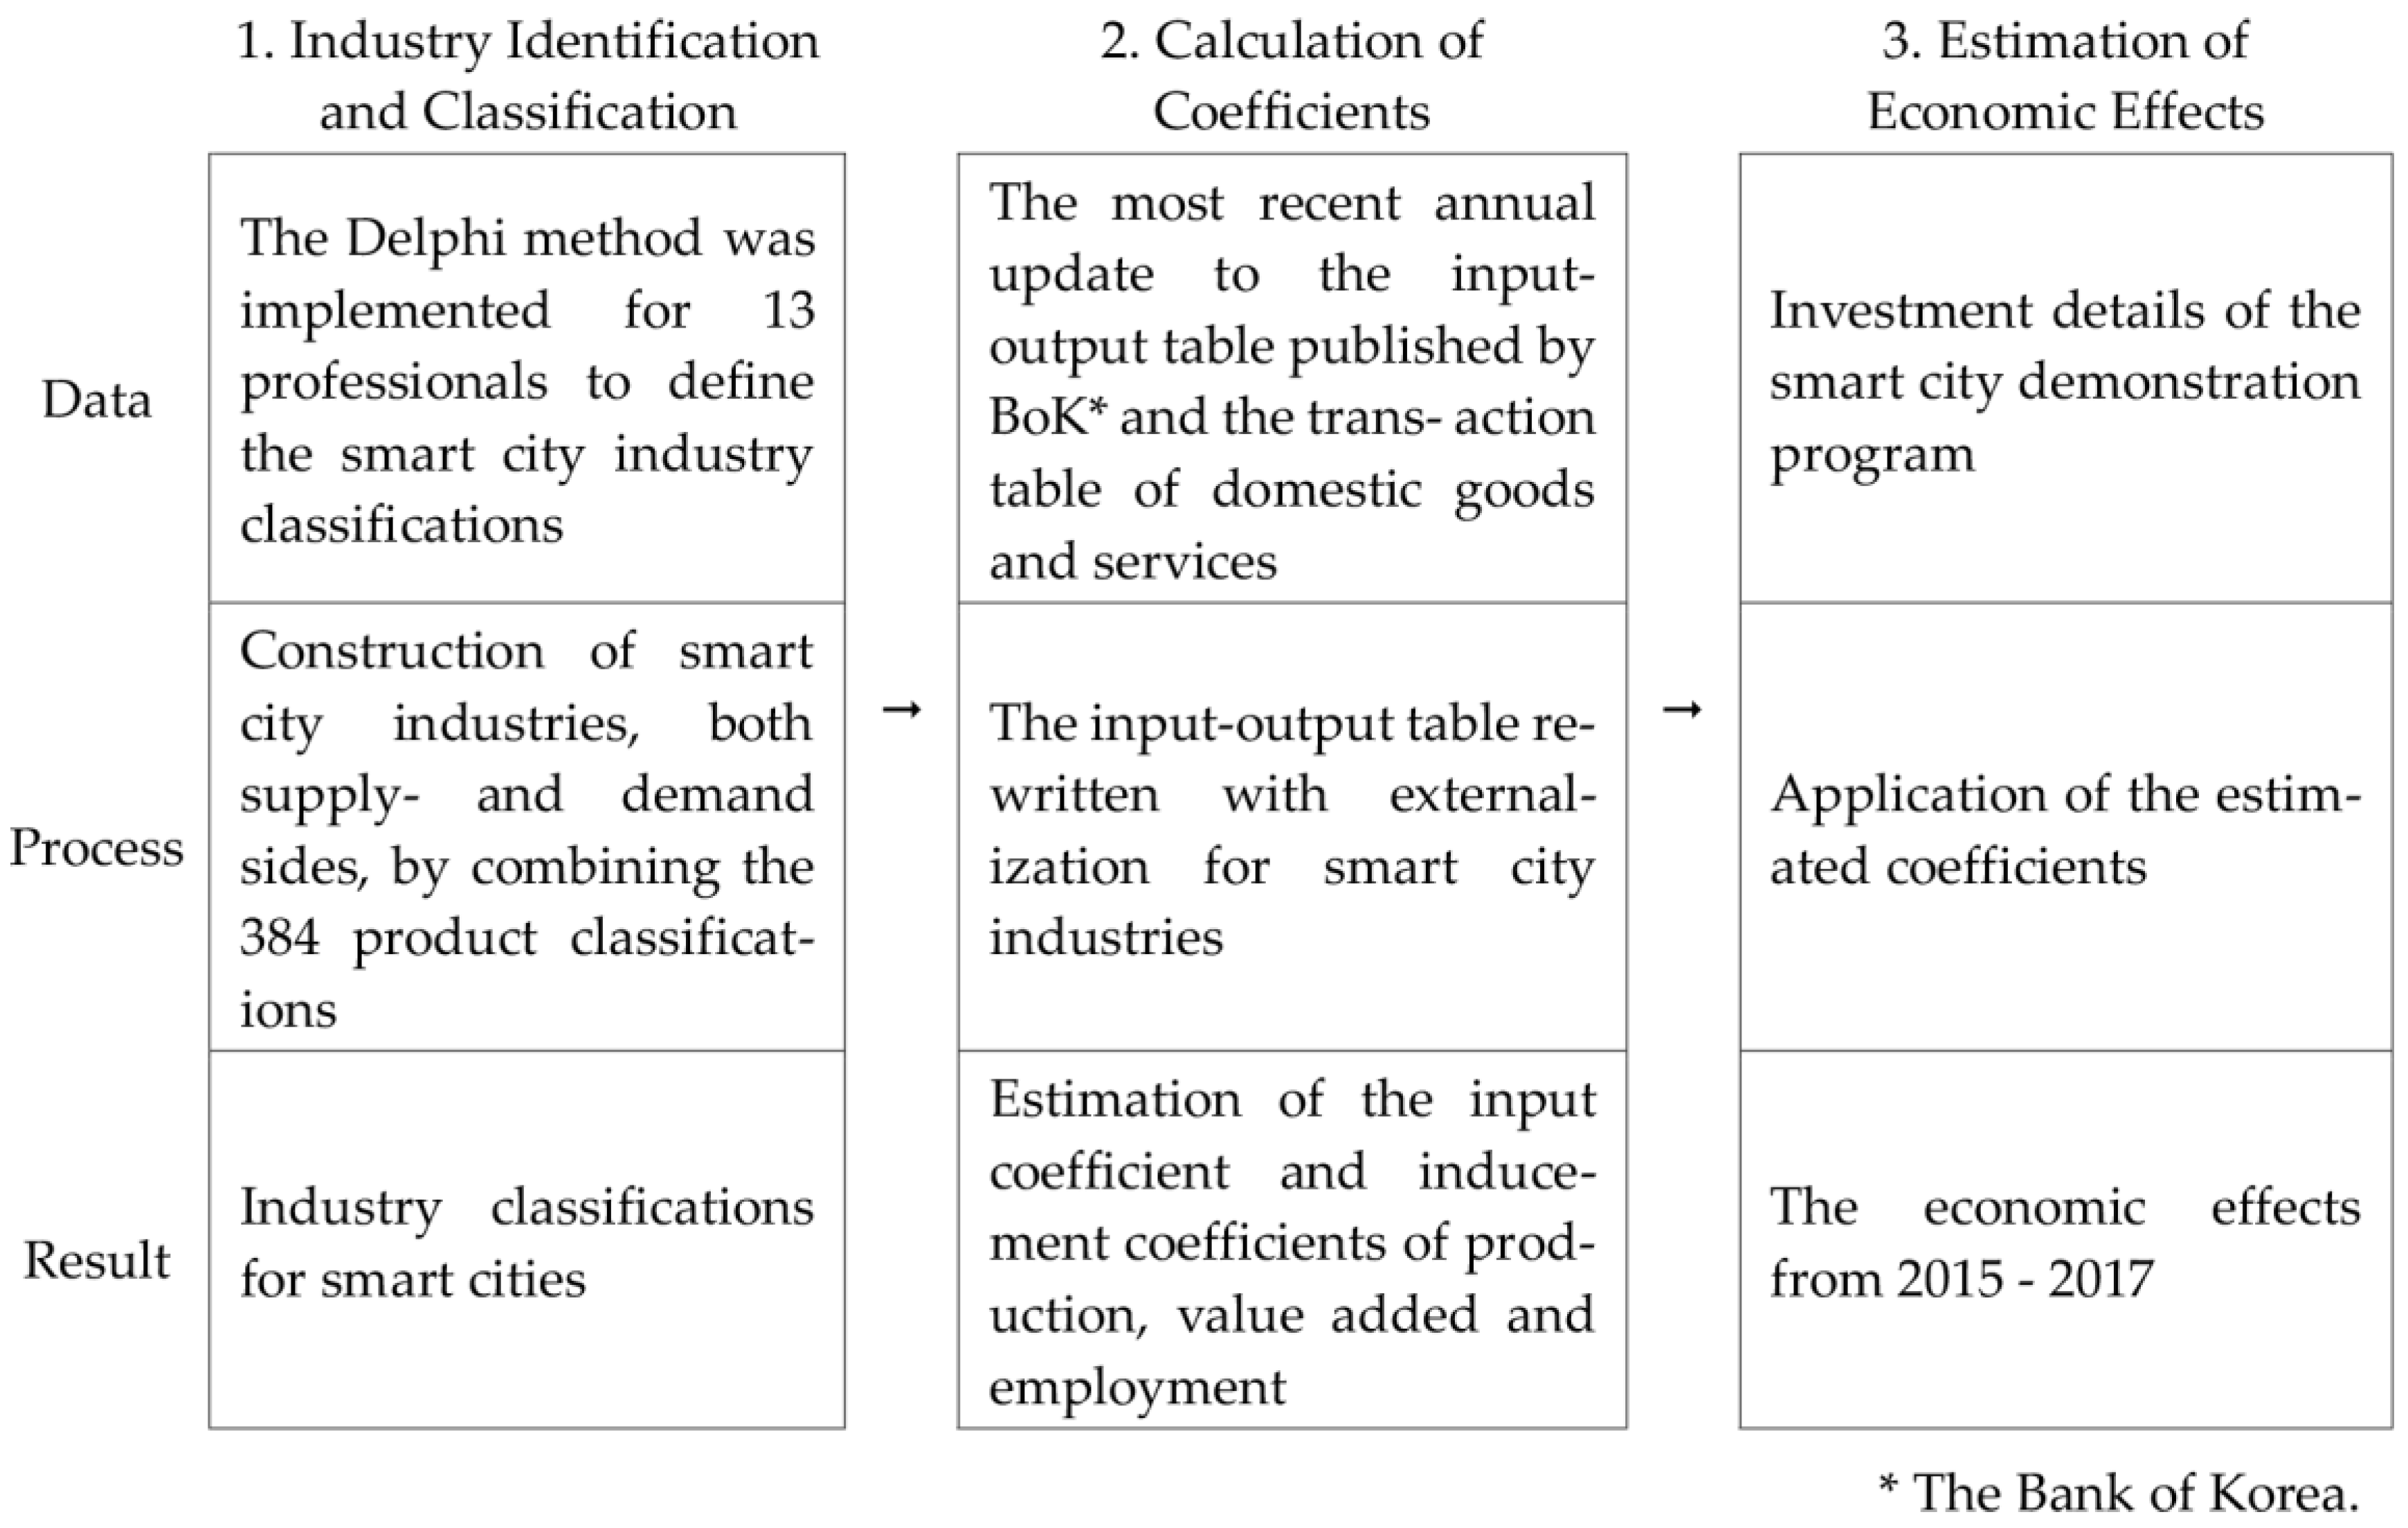 Sustainability | Free Full-Text | Impact of the Smart City